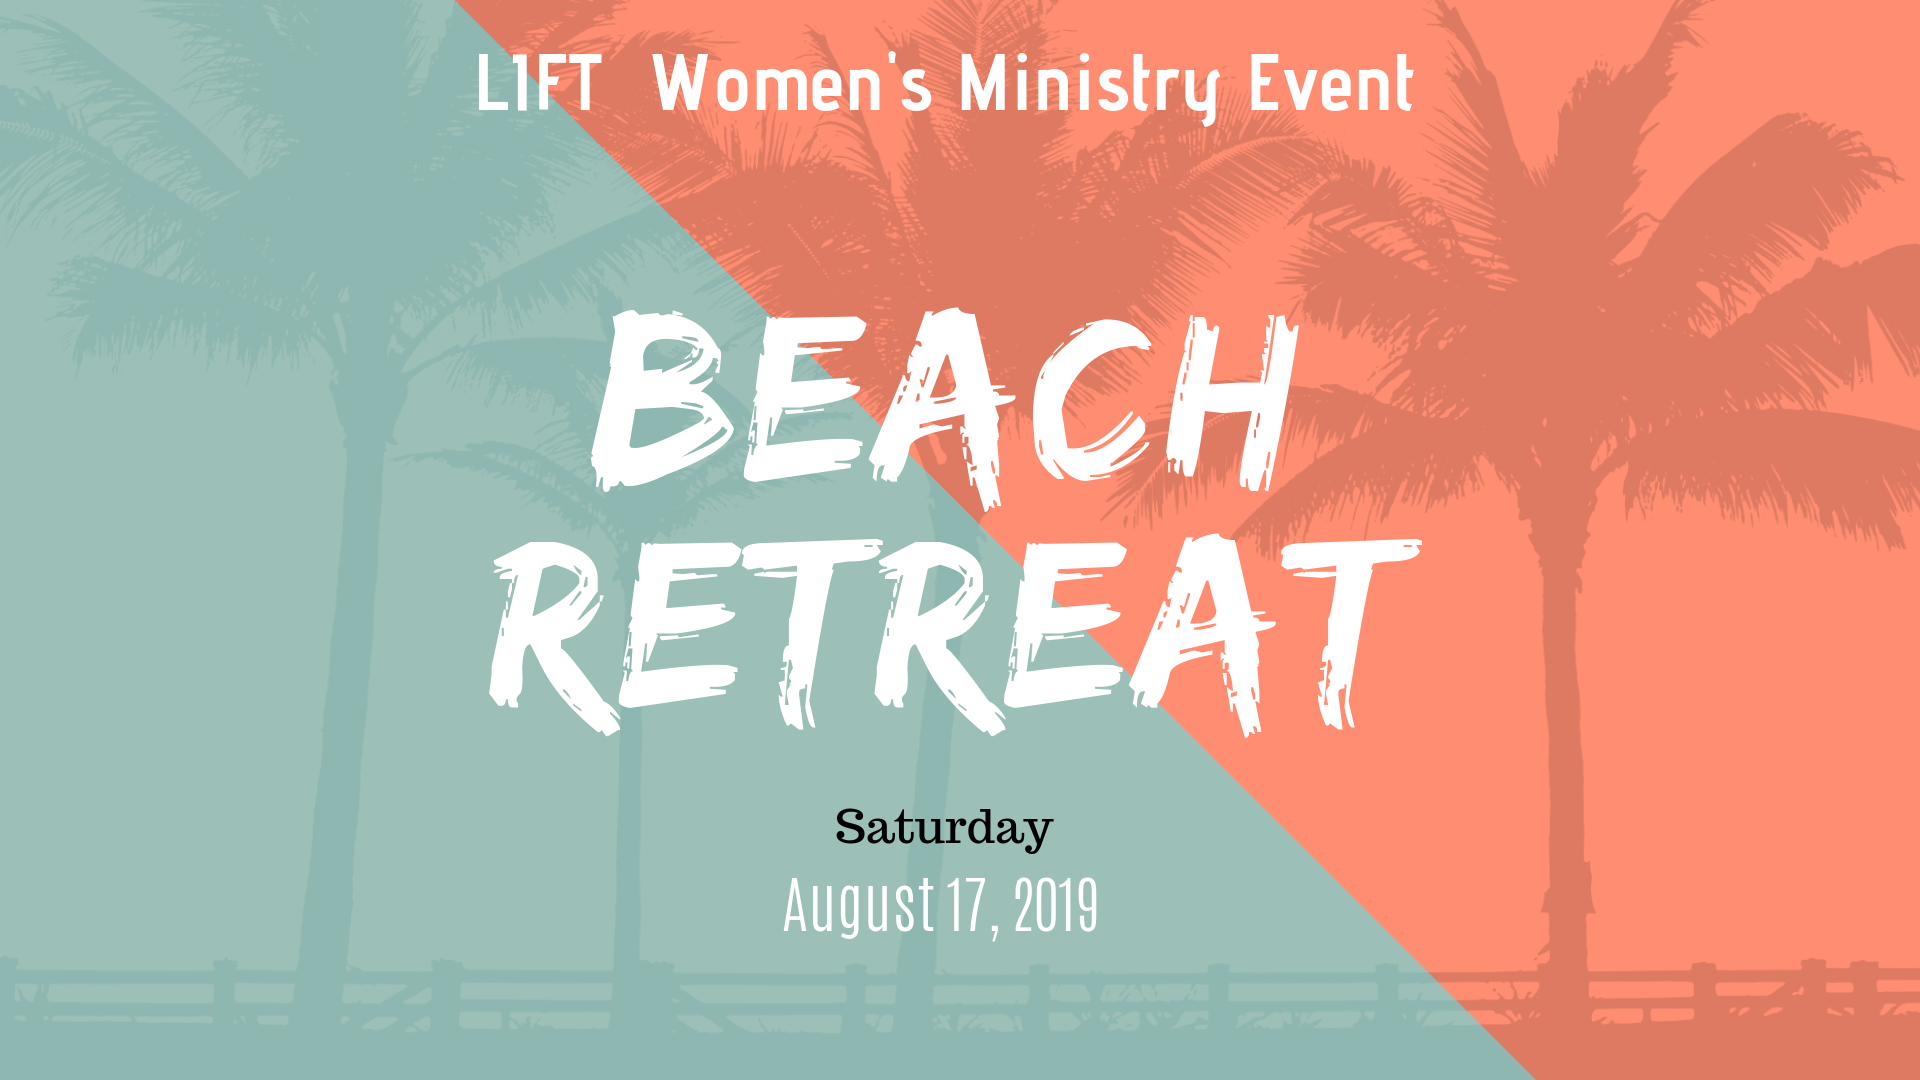 The LIFT Women's Ministry will be having an amazing Beach Retreat on Saturday, August 17, we are calling interested women of all ages to come out and have some fun with friends and family